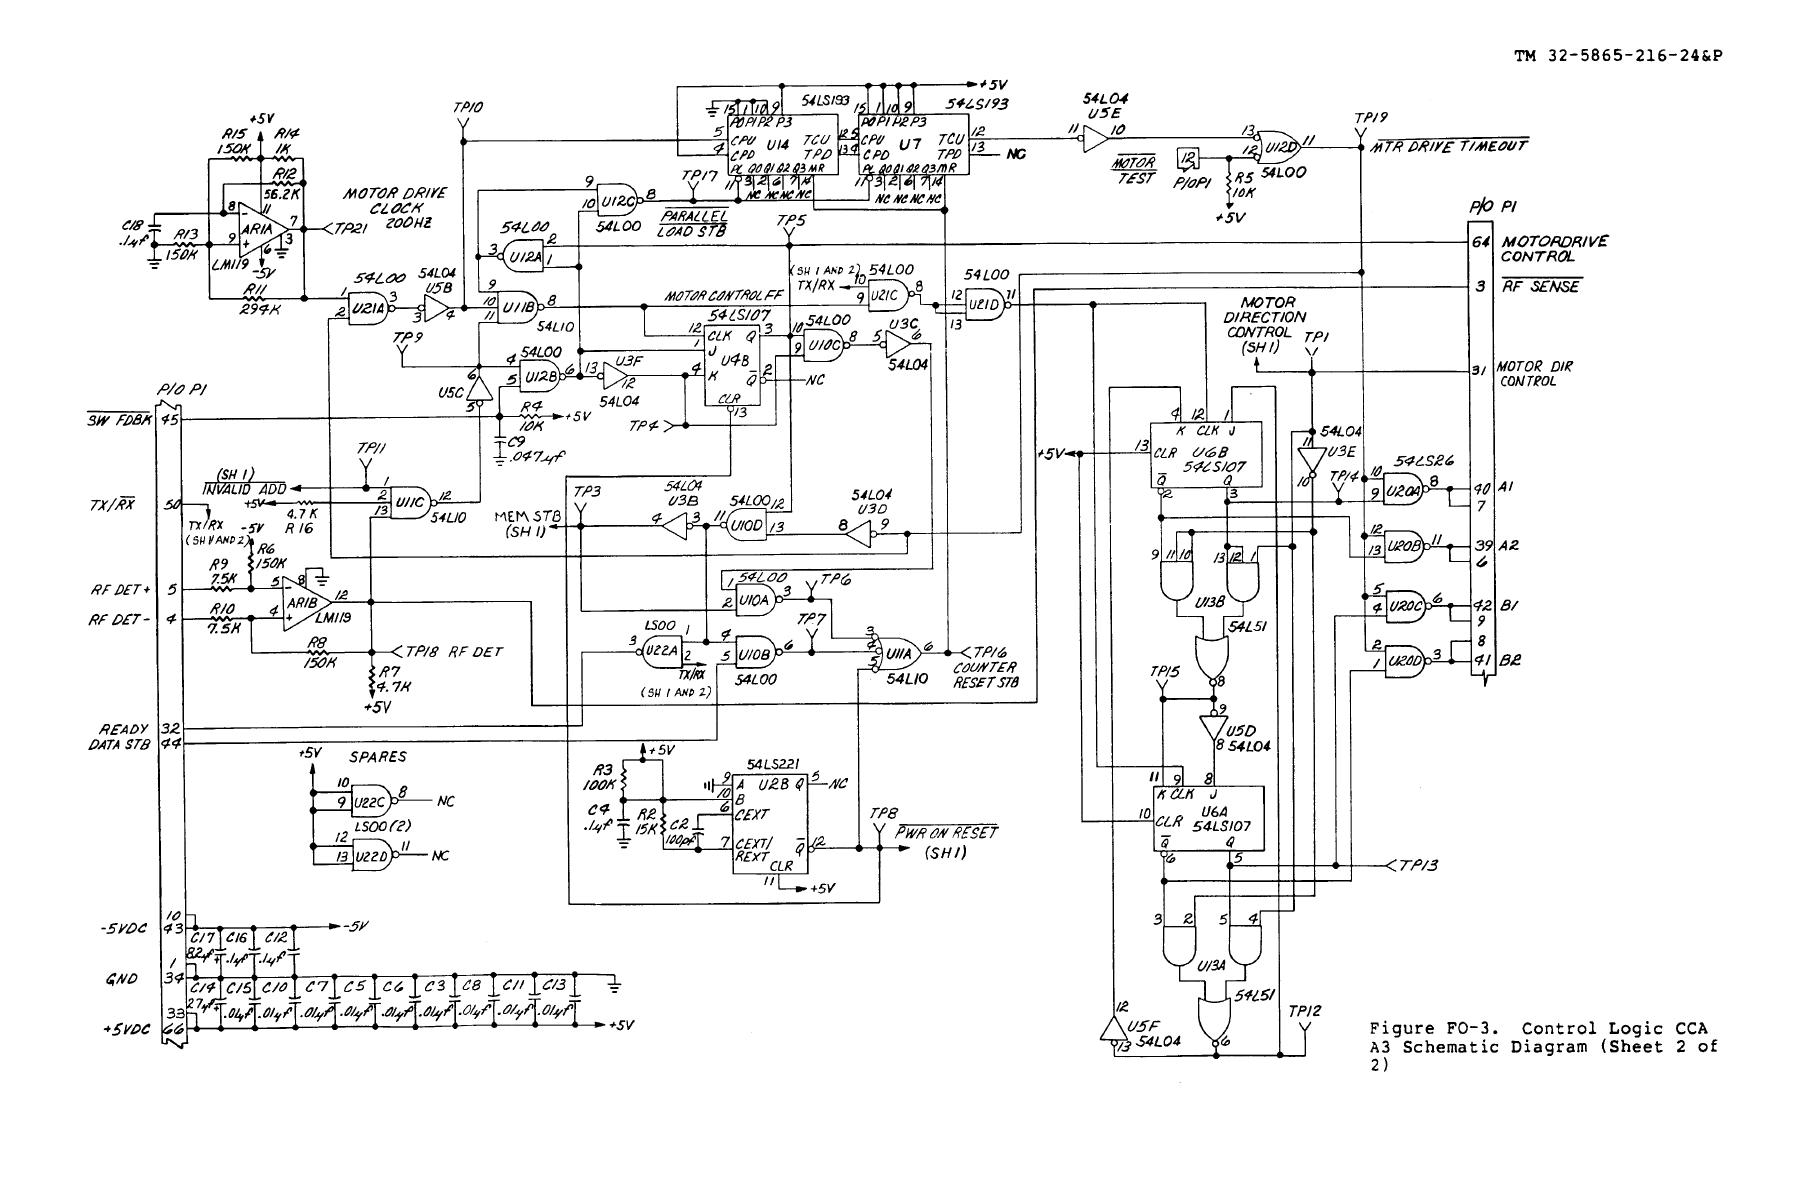 Cub Cadet Schematic Diagram 1450